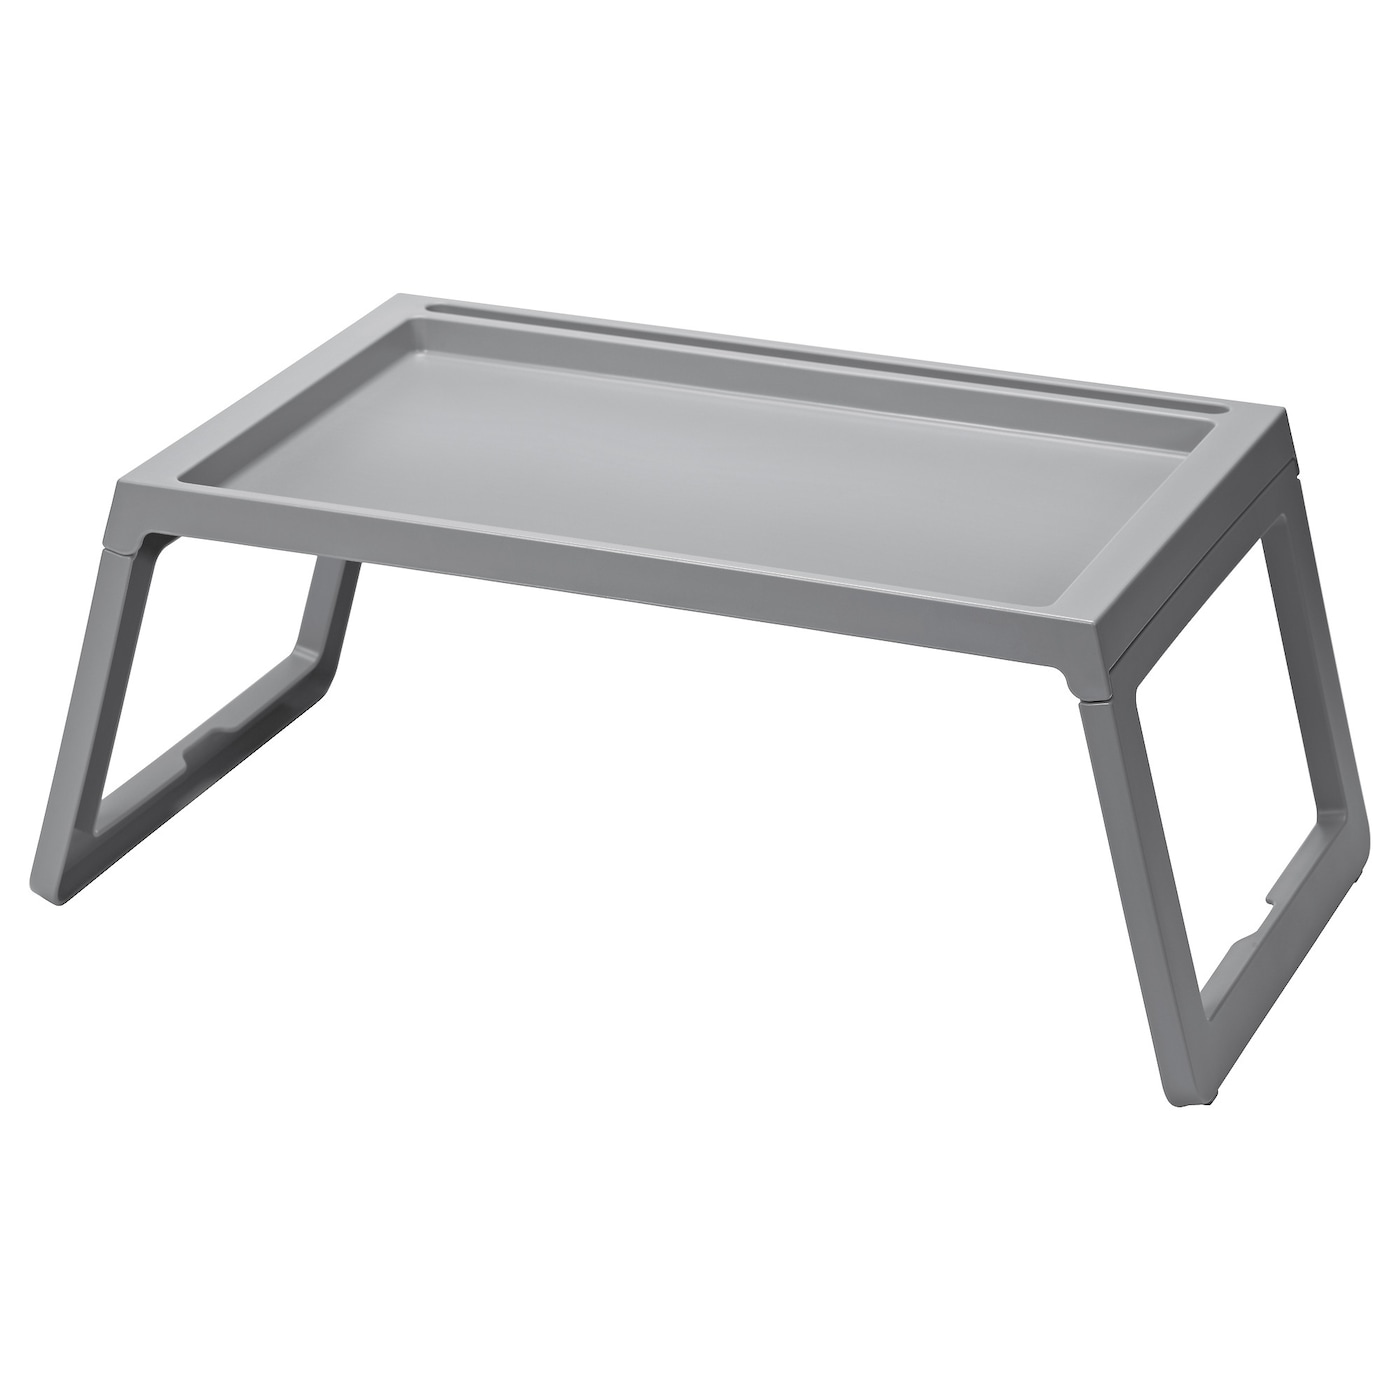 Charmant IKEA KLIPSK Bed Tray Foldable Legs Make The Bed Tray Easy To Store Without  Taking Up